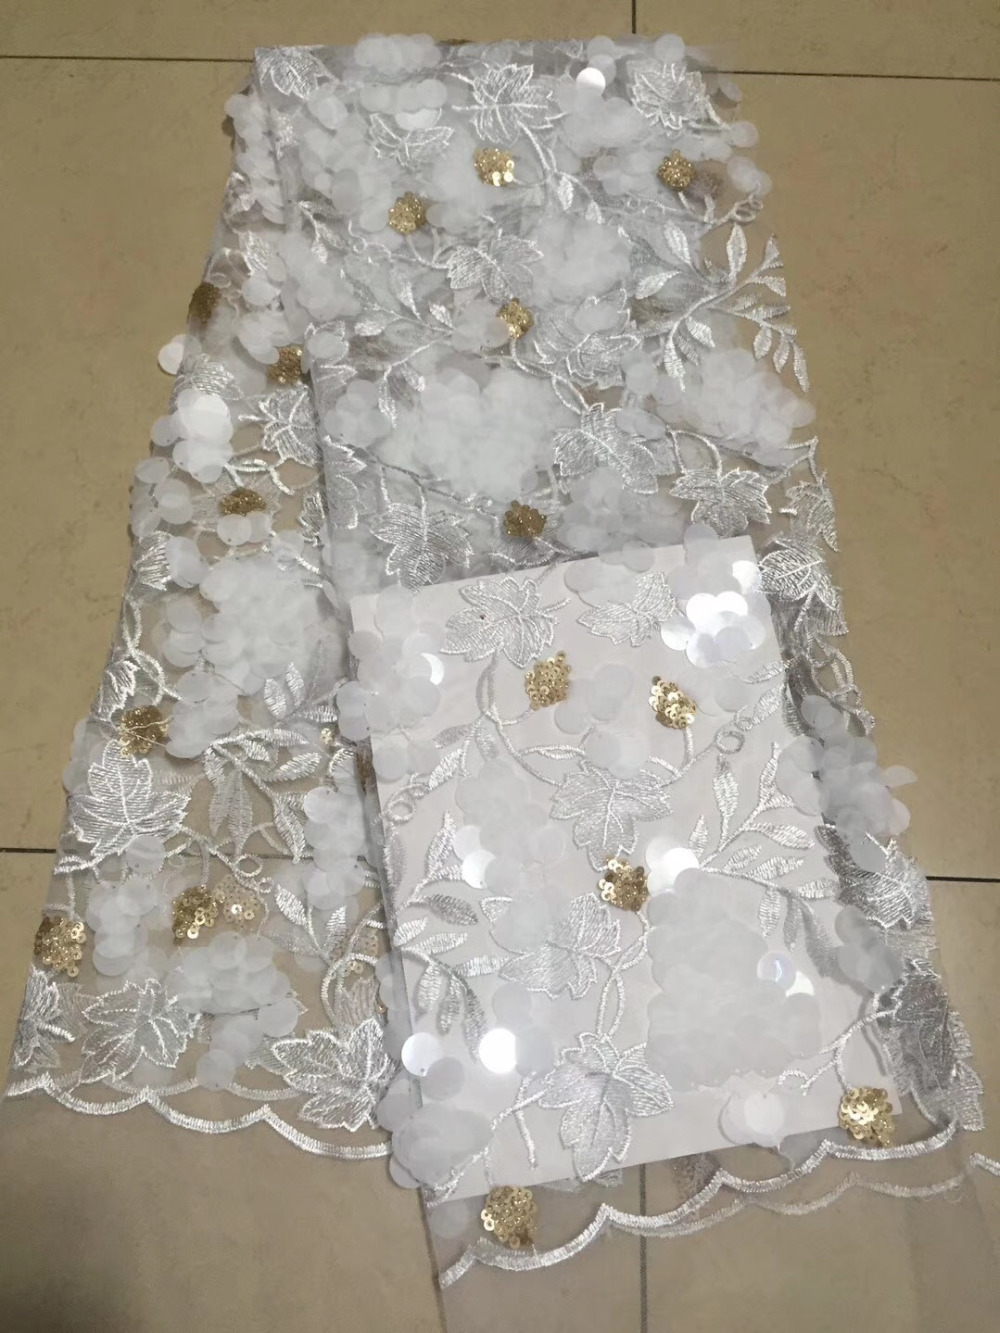 Popular New Latest French Laces Fabric High Quality Fabrics For Patchwork White Gold Big Sequins DIY